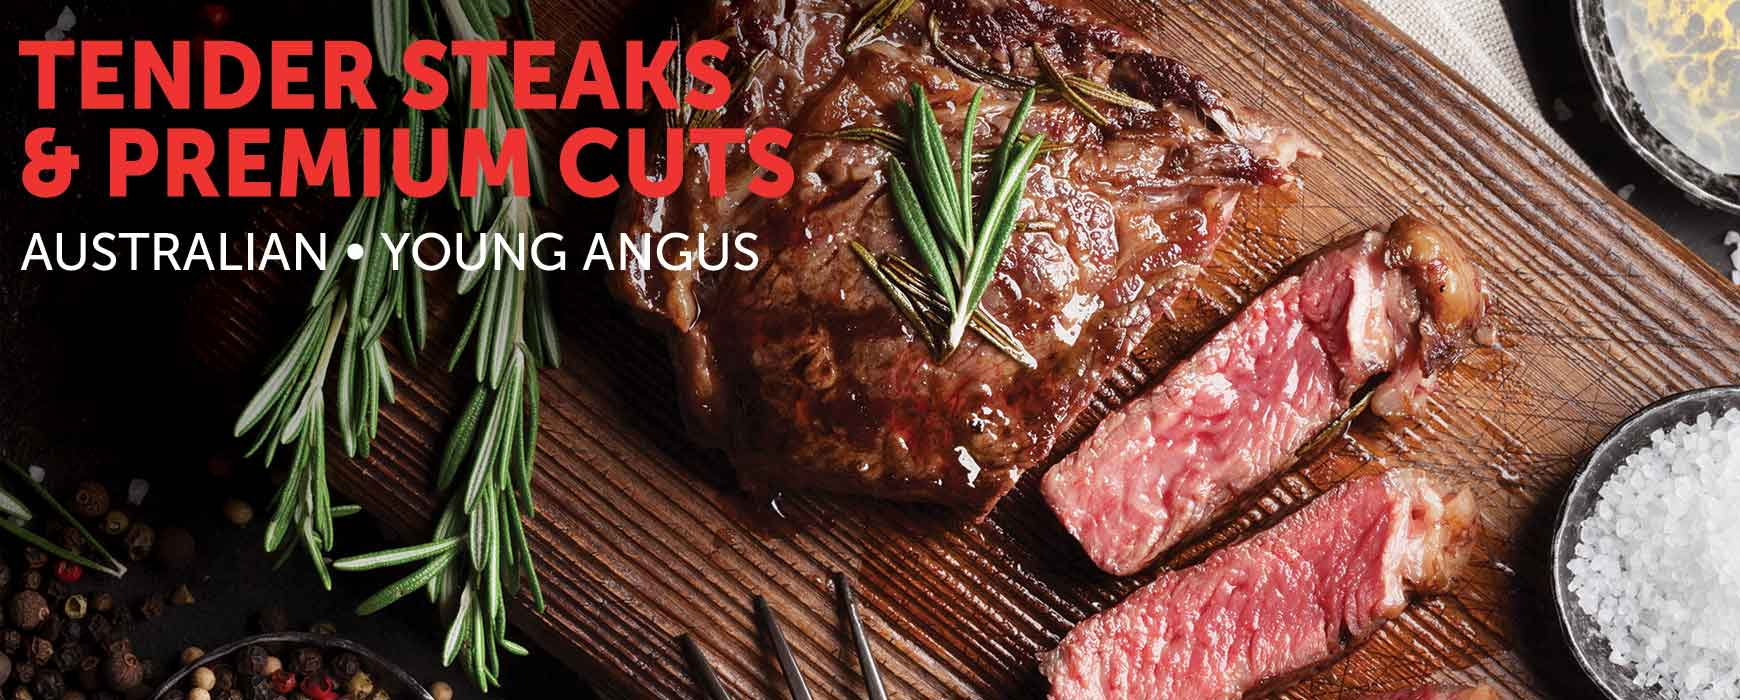 Steaks & Premium cuts